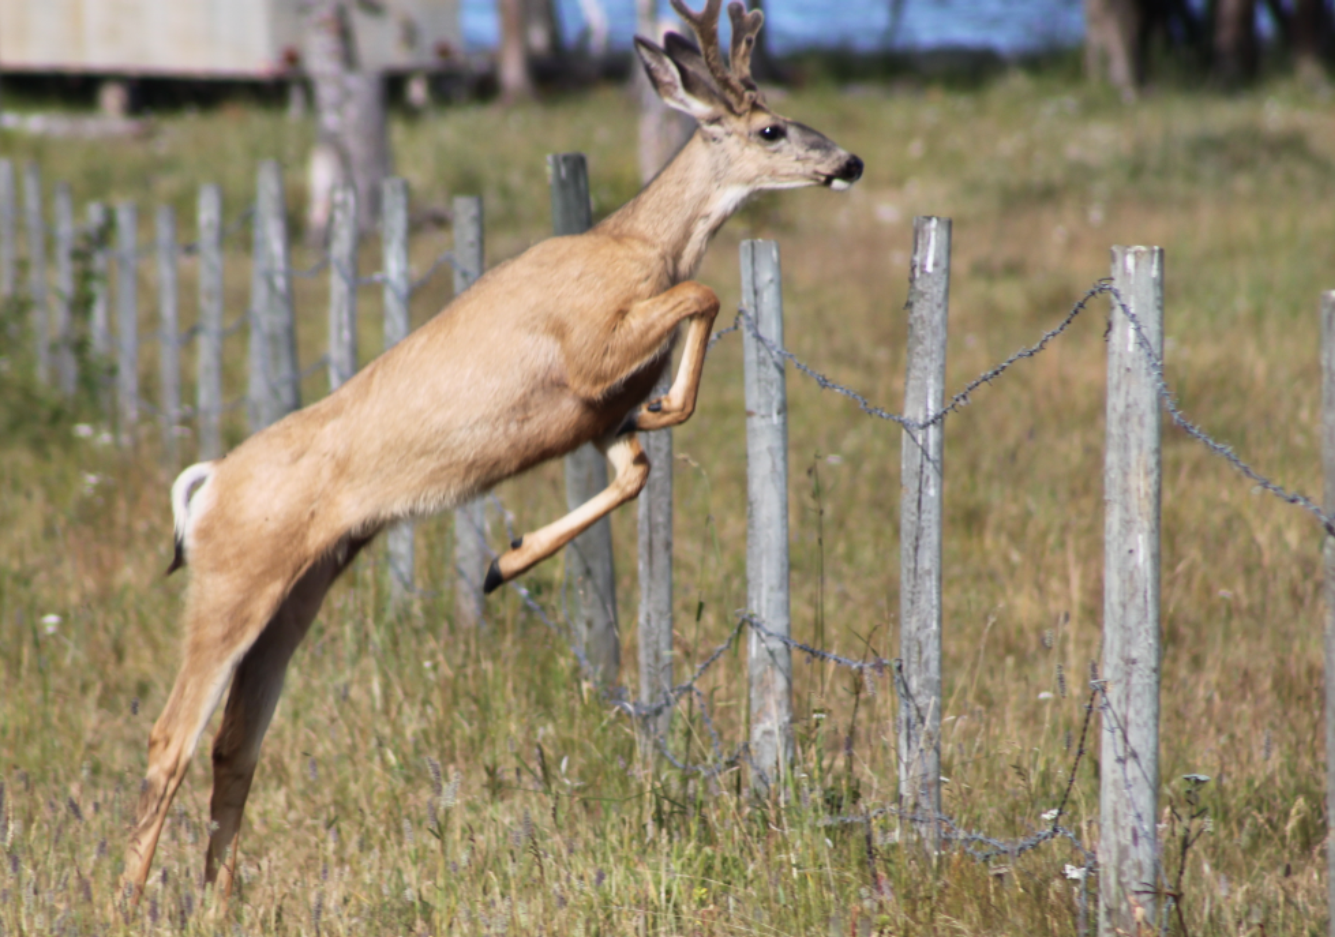 Deer jumping over fence by Greg Johnson.